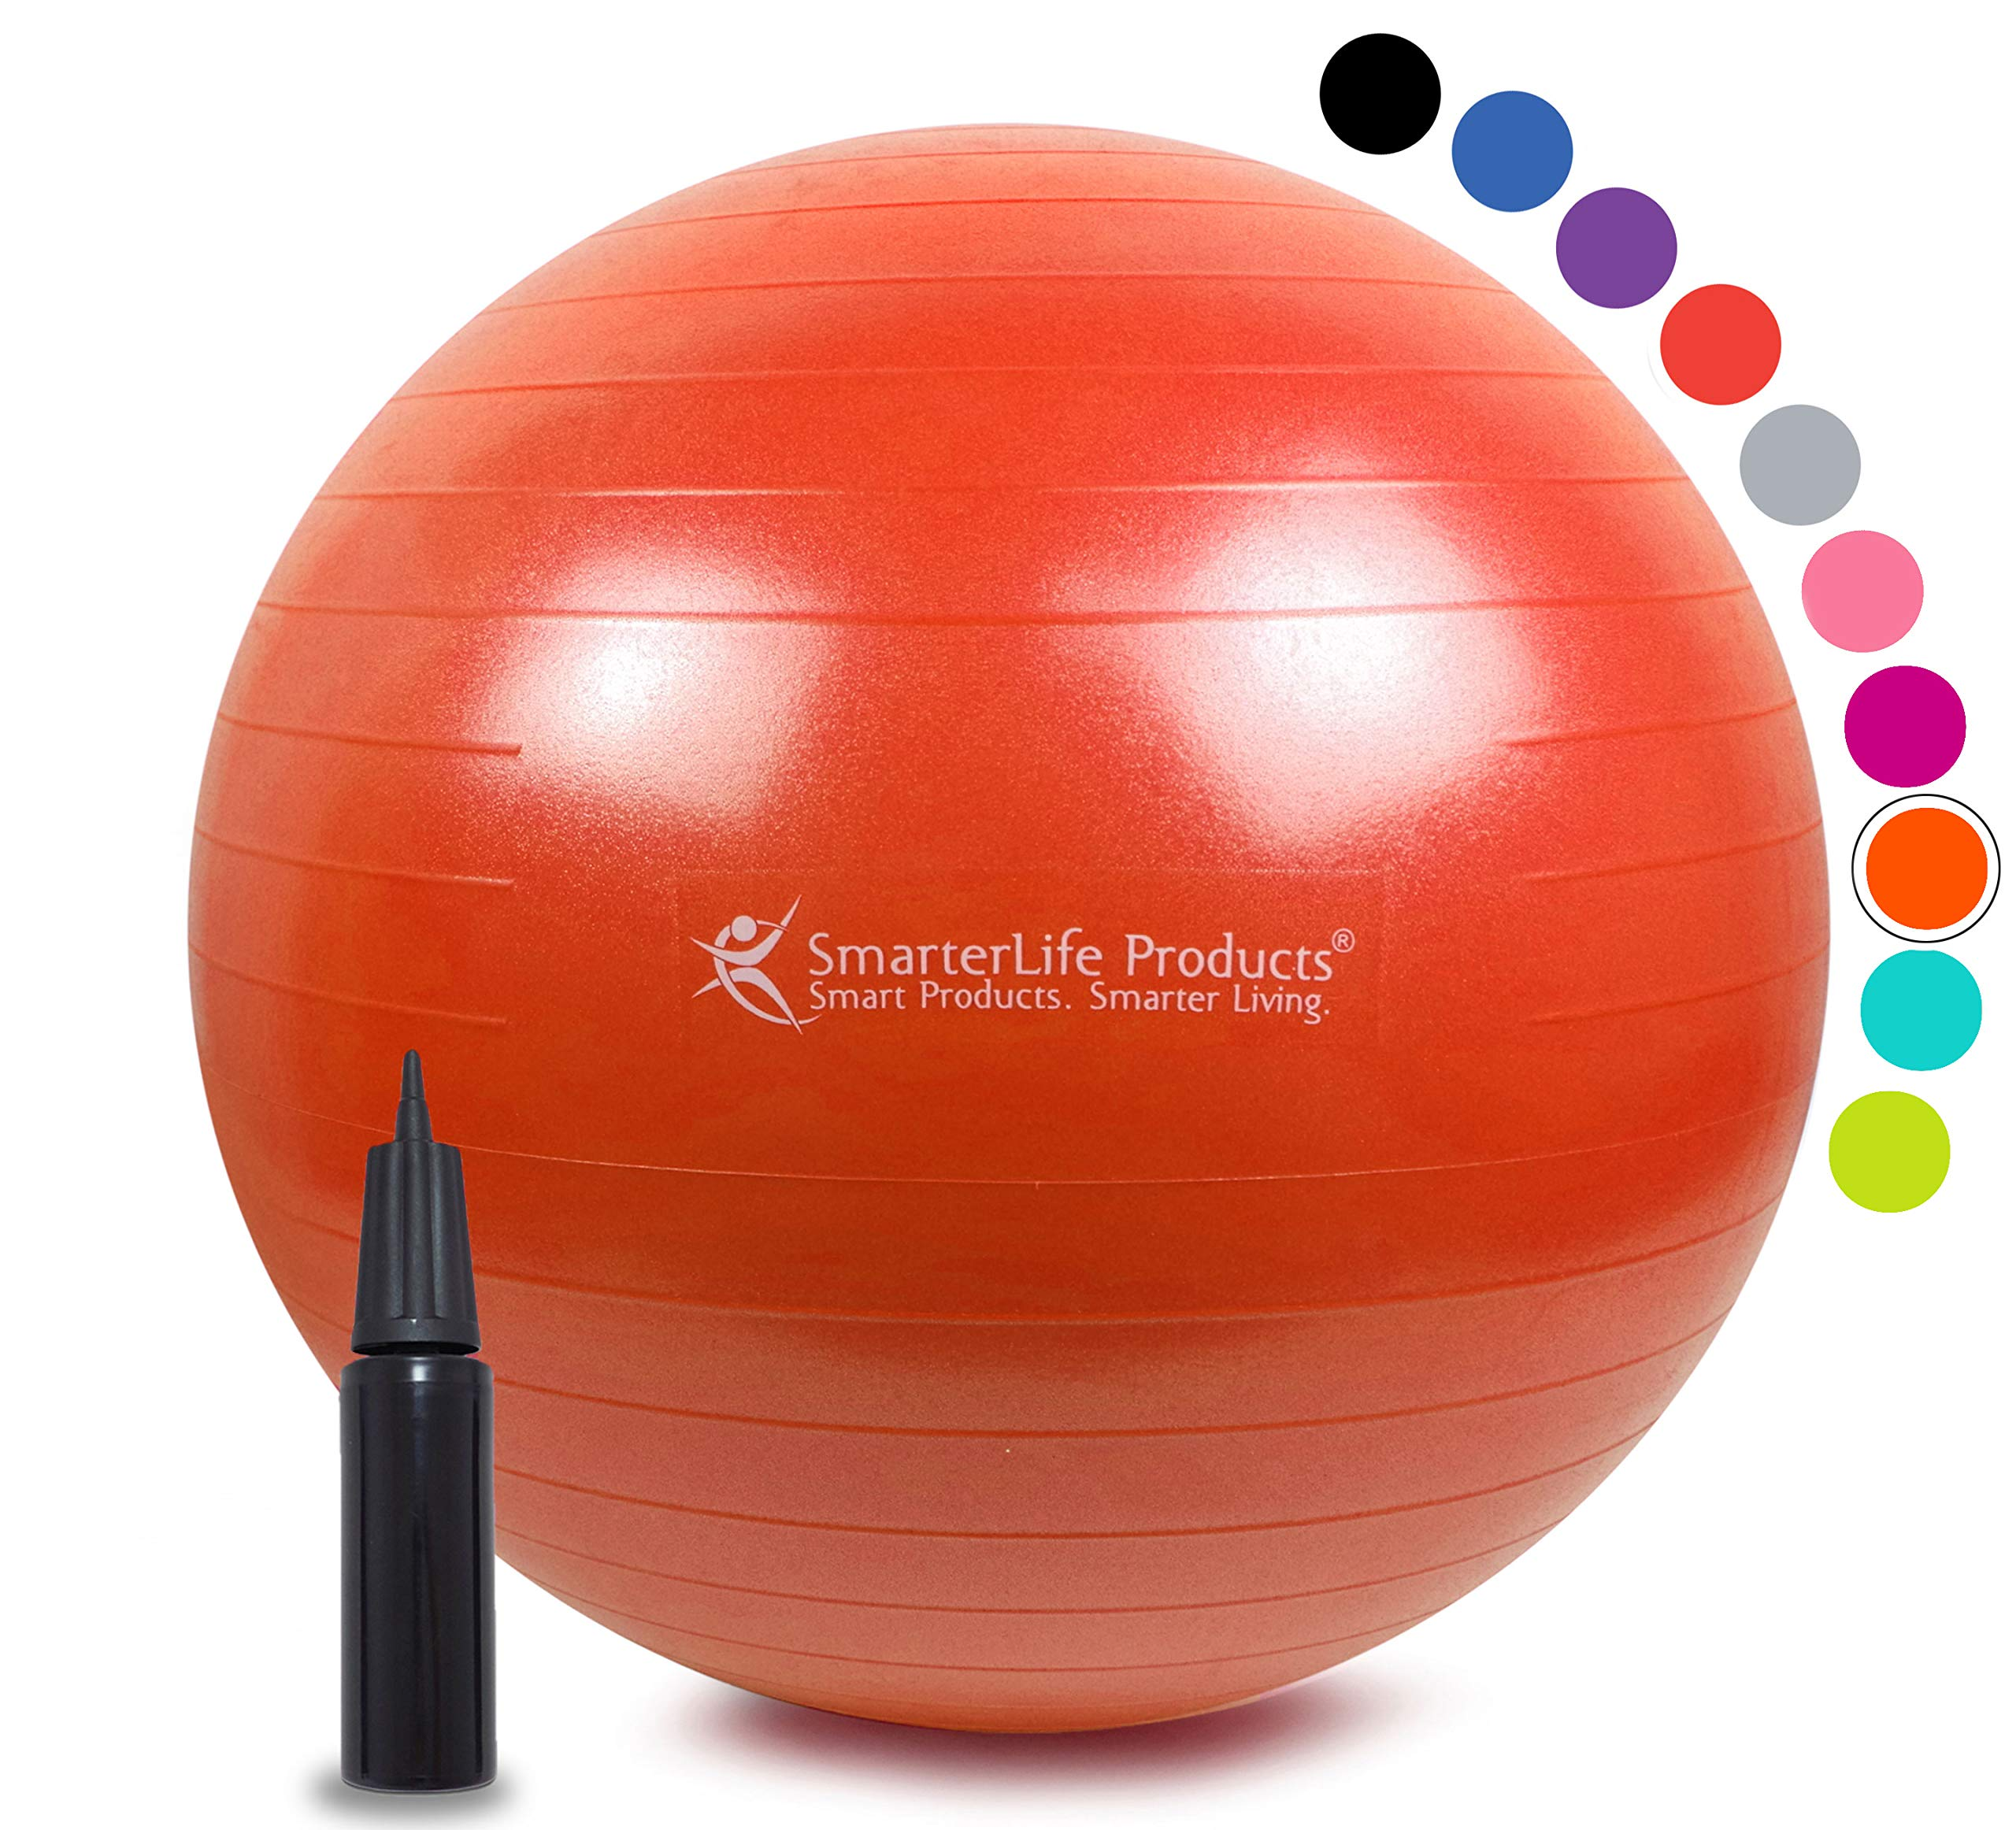 Exercise Ball for Yoga, Balance, Stability from SmarterLife - Fitness, Pilates, Birthing, Therapy, Office Ball Chair, Classroom Flexible Seating - Anti Burst, Non Slip + Workout Guide (Orange, 45 cm)